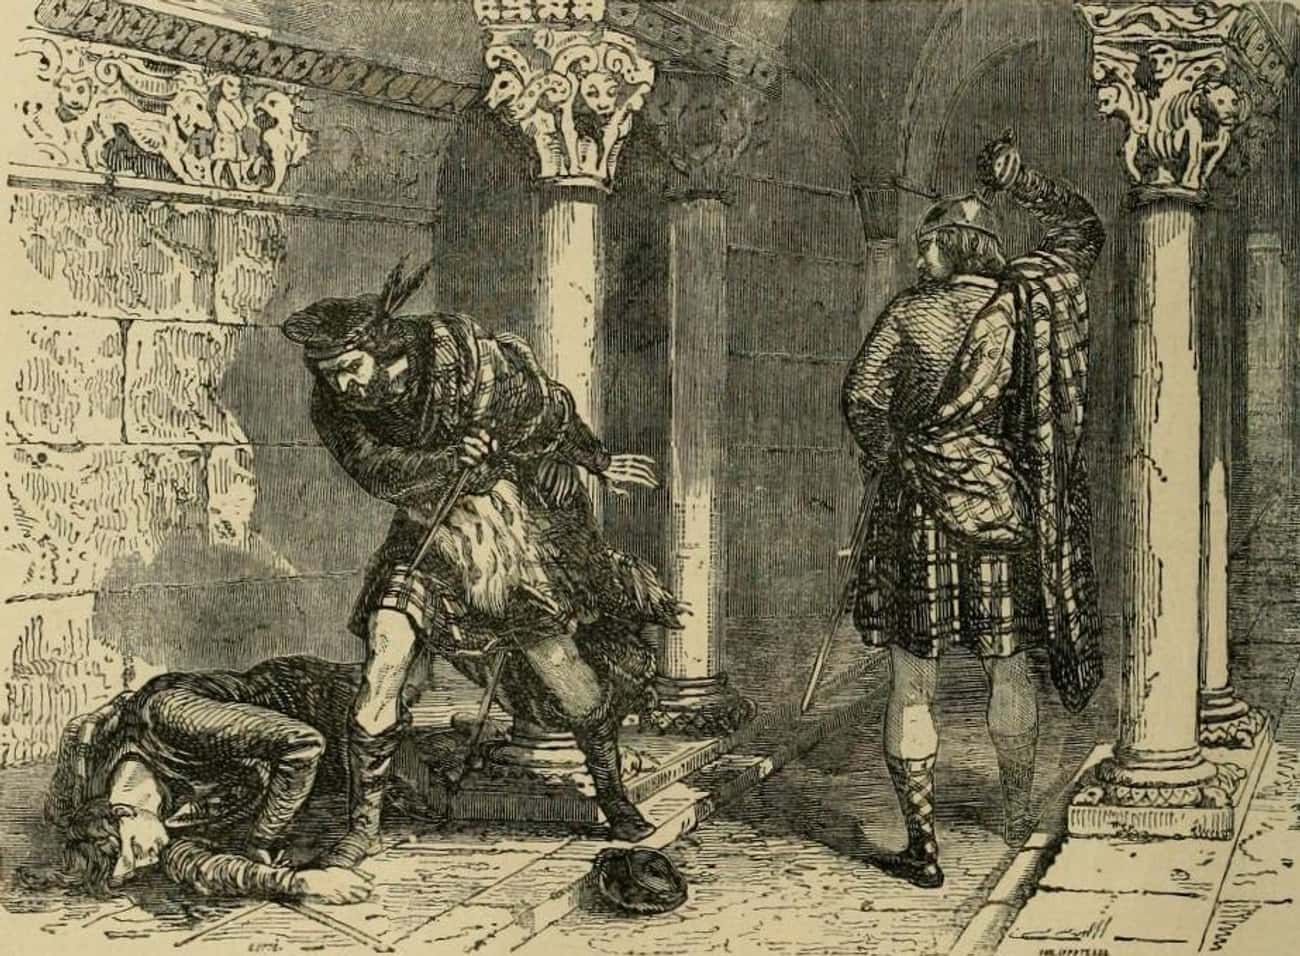 Robert The Bruce Stabbed His Rival To Death In A Church